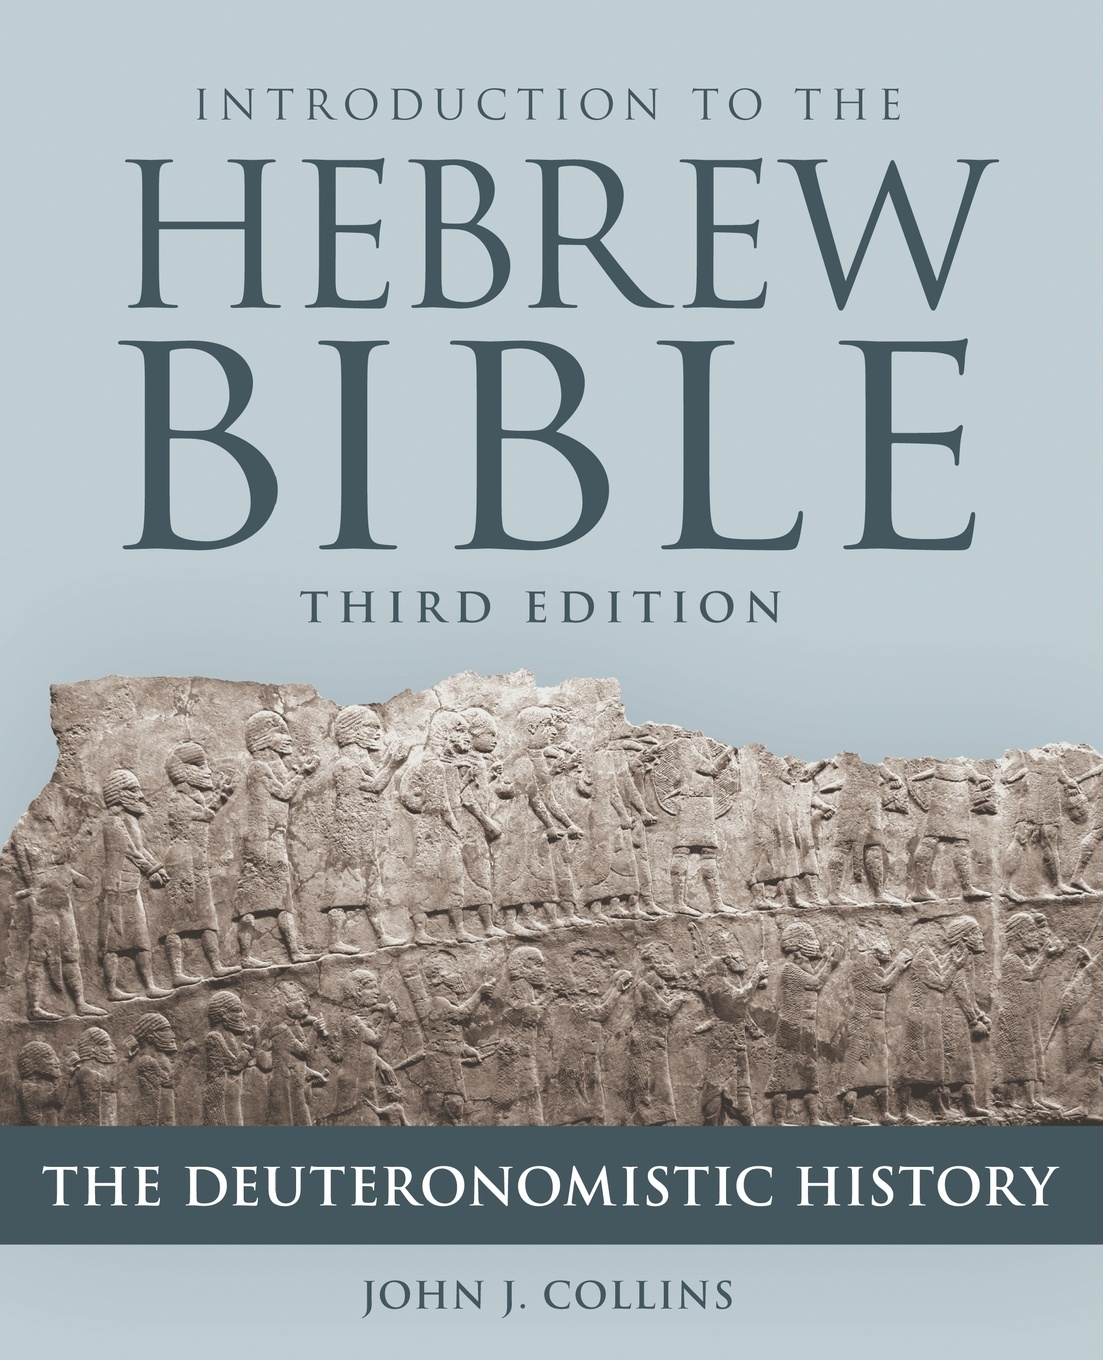 Фото - John J. Collins Introduction to the Hebrew Bible, Third Edition - The Deuteronomistic History collins s catching fire movie tie in edition